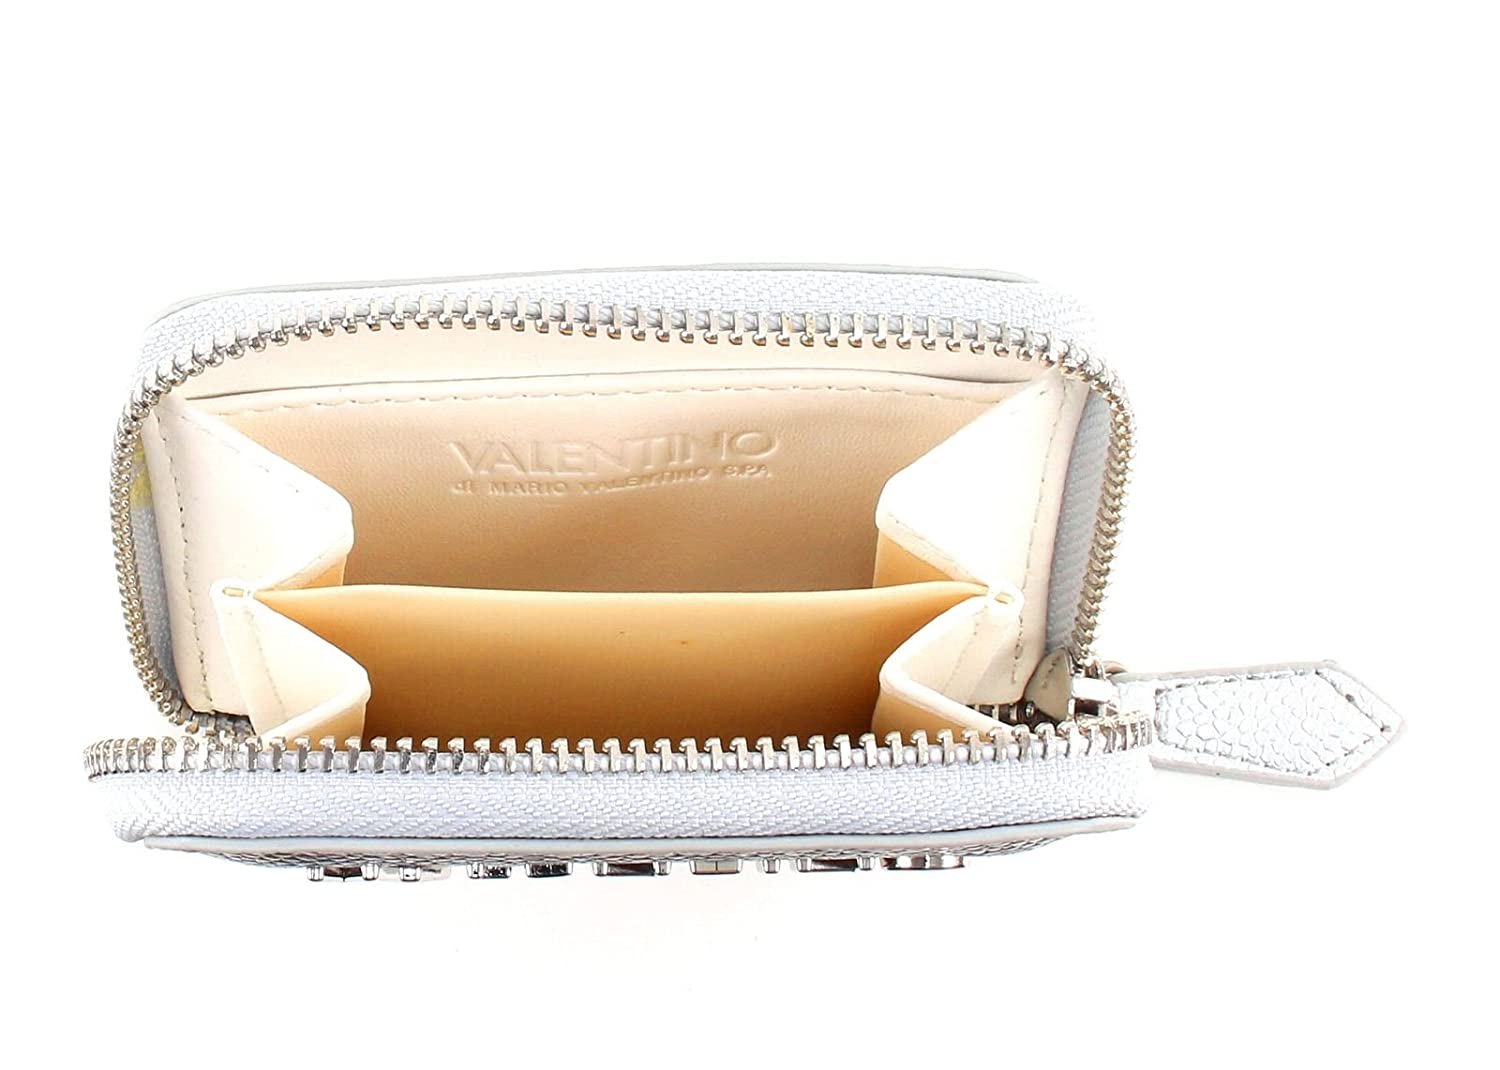 057acbef3c9f VALENTINO Divina Zip Around Wallet XS Argento  Amazon.co.uk  Shoes   Bags